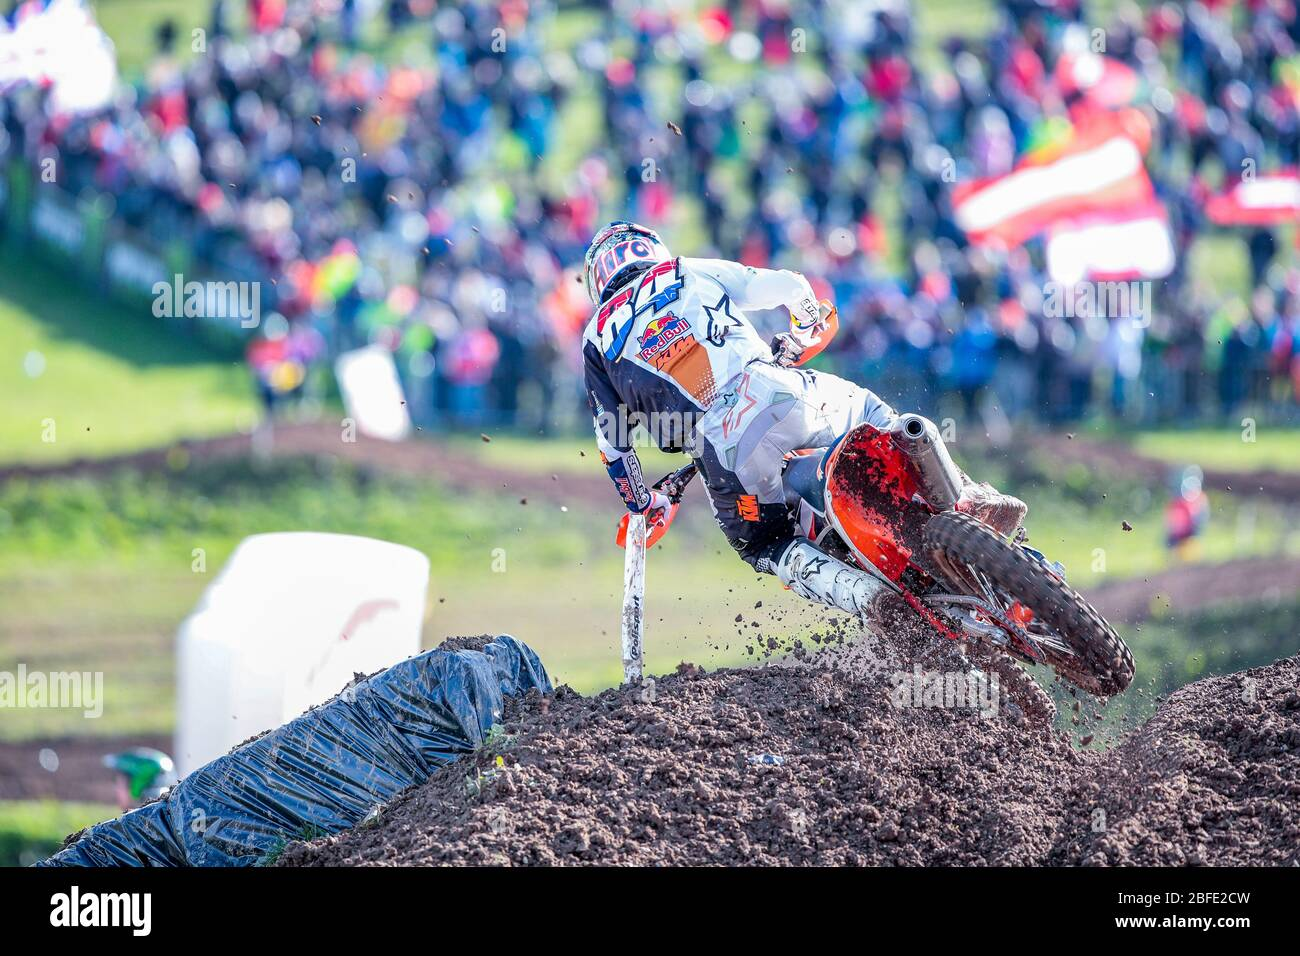 Winchester, Italy. 01st Mar, 2020. jeffrey herlings (hol) ktm factory racing classe mxgp during MXGP of Great Britain, Motocross in winchester, Italy, March 01 2020 Credit: Independent Photo Agency/Alamy Live News Stock Photo